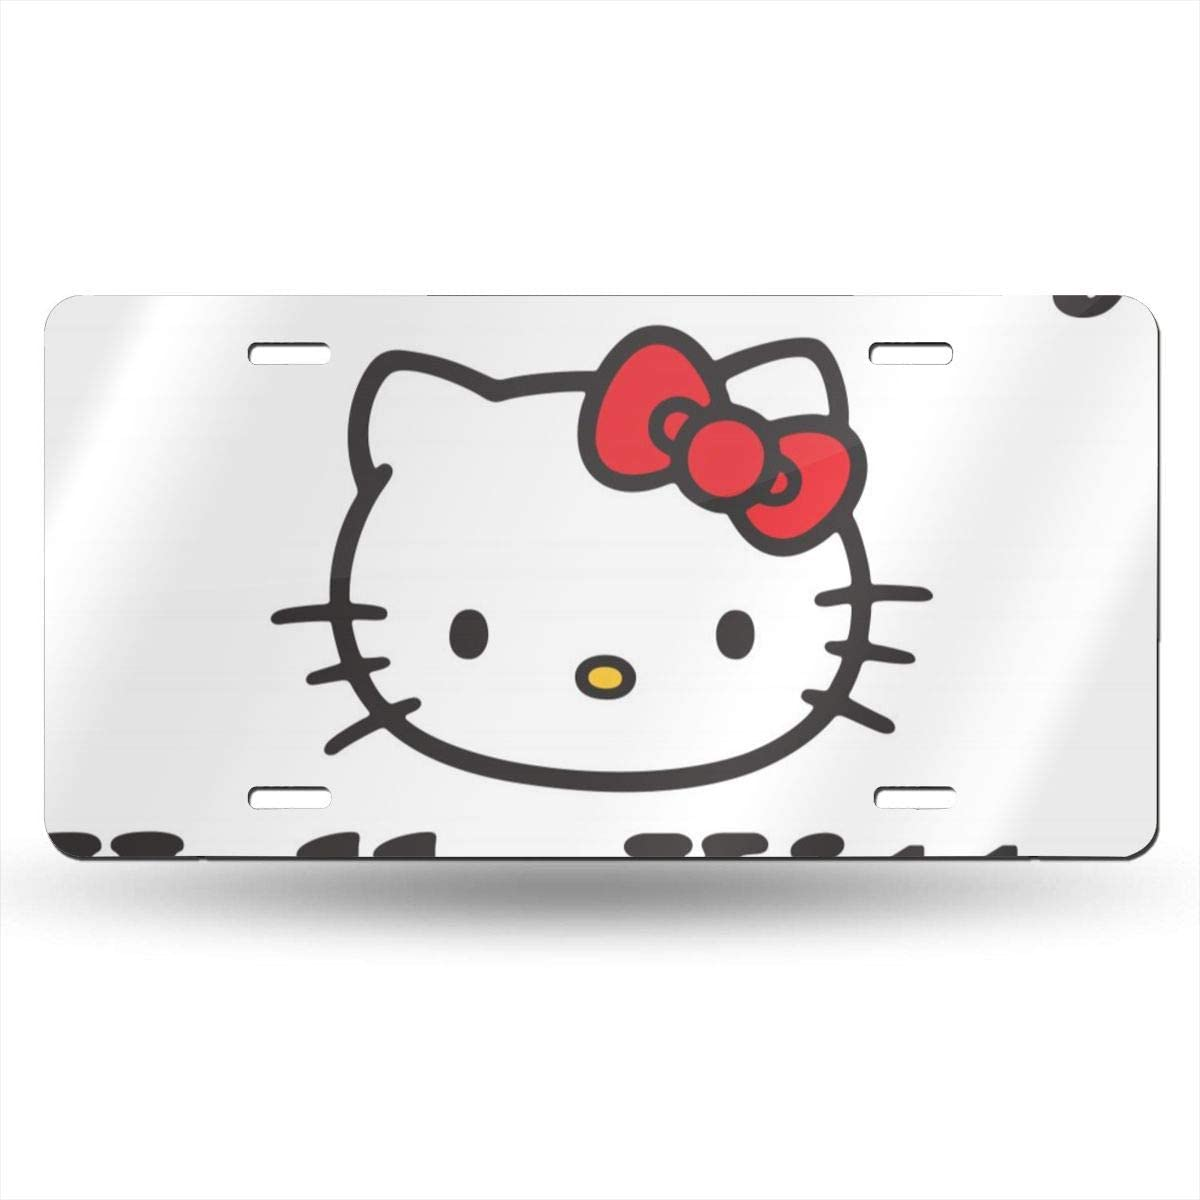 Mickey Mouse Cartoons License Plate Tag Car Accessories 12 X 6 Inches Aluminum License Plates